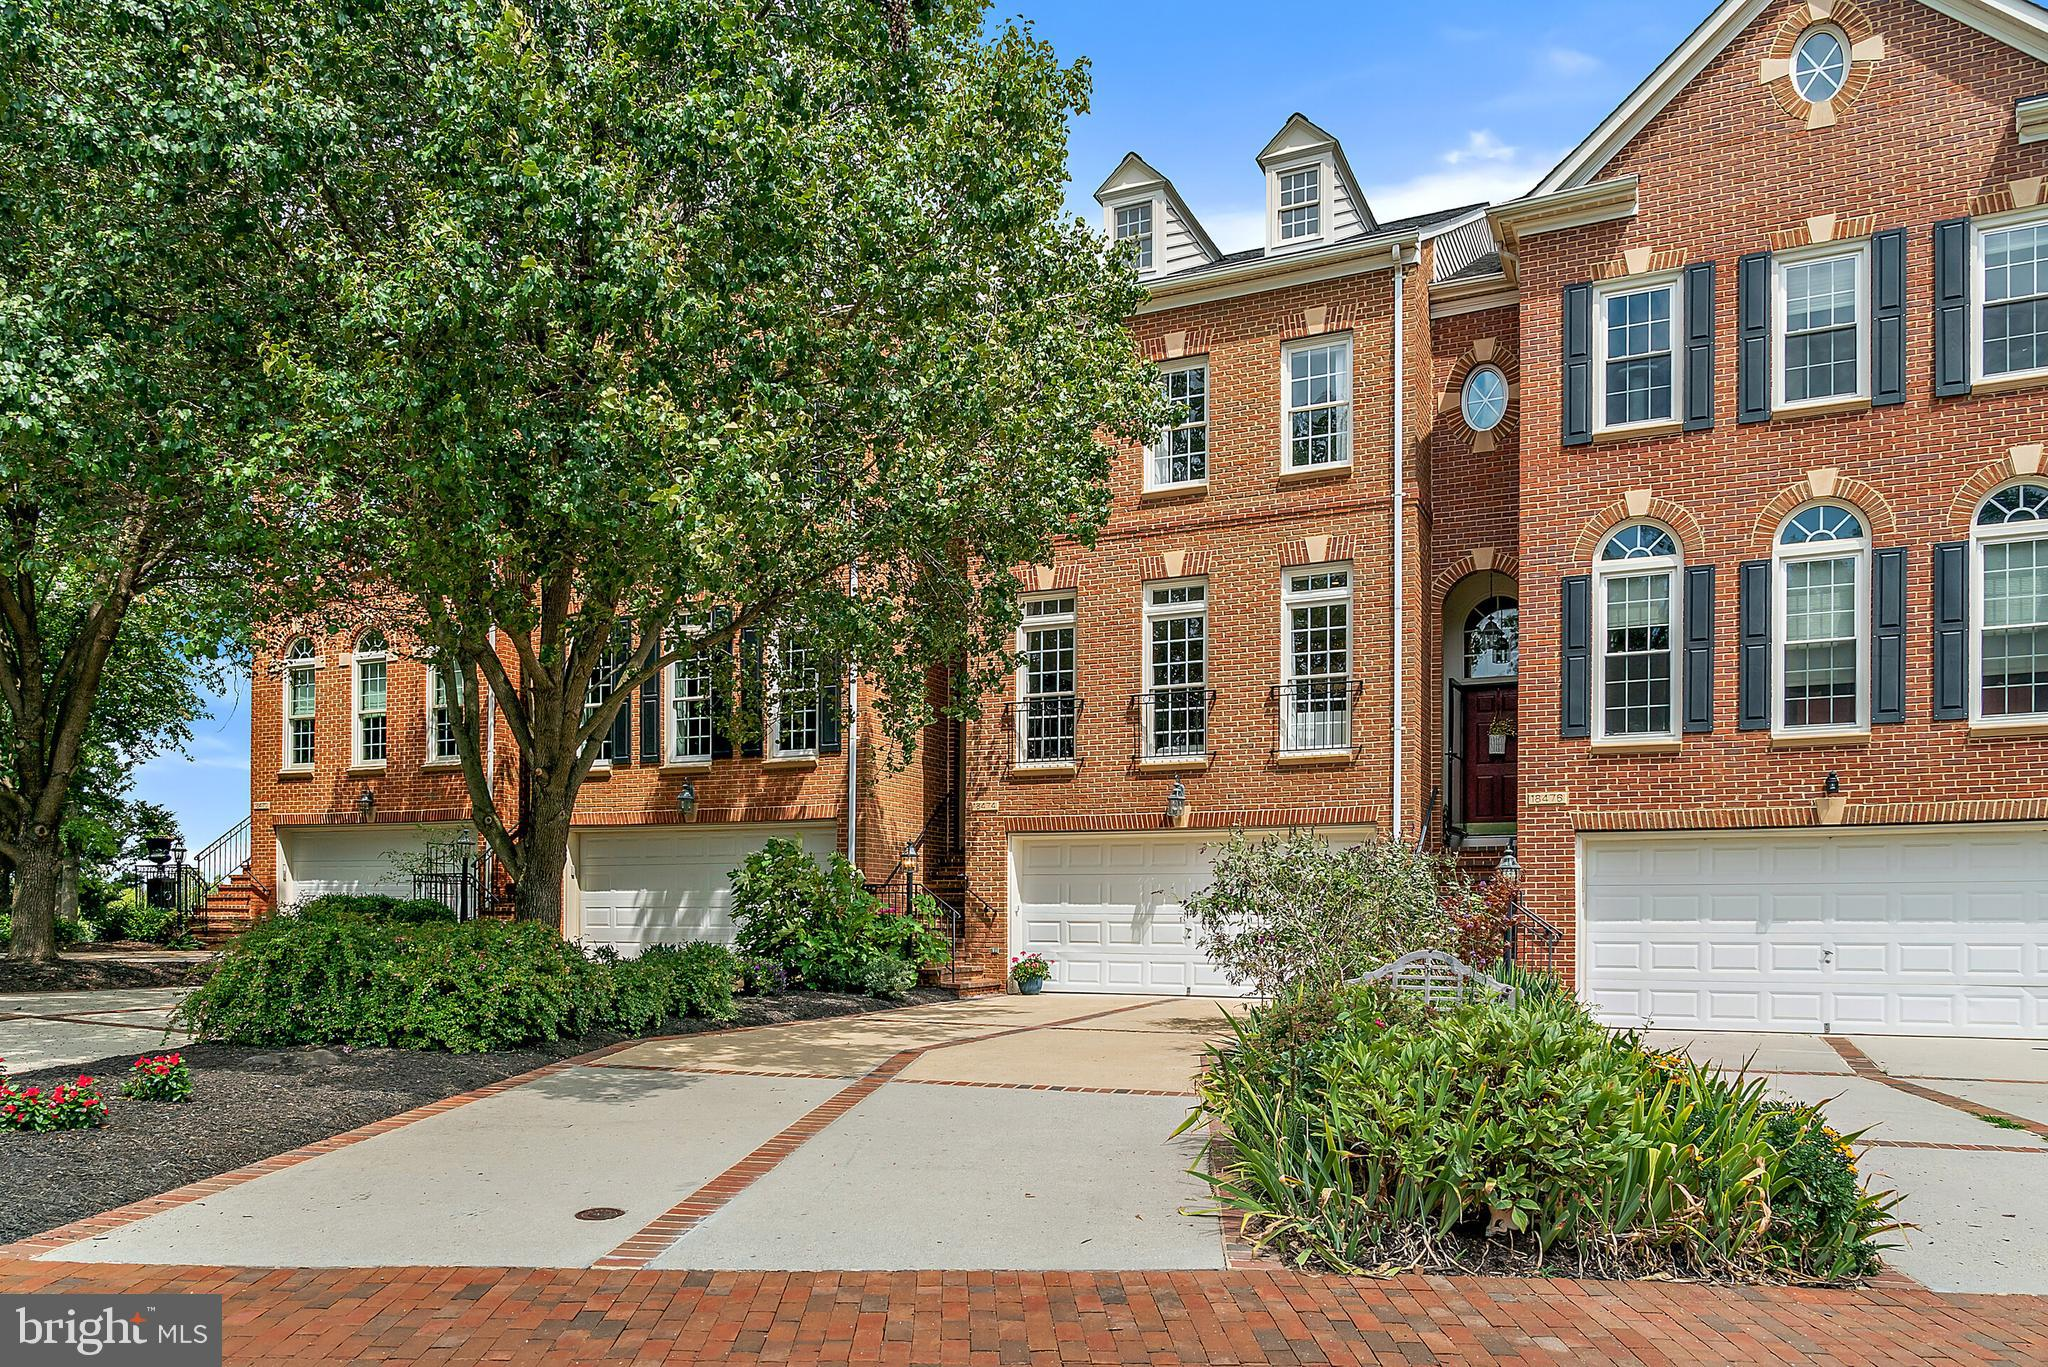 NEW PRICE!!   Welcome Home to 18474 Perdido Bay Ter, Leesburg VA in River Creek.  This Perfect, Light-filled, Brick Front Town Home with 3 Bedrooms, 3.5 Bathrooms, 2,600 Sq. Ft Finished Living Space on 3 Levels, 2 Car Garage, Deck, Walkout Basement, & Fully Fenced Yard in the Prestigious Gated River Creek Neighborhood! This Home is Perfectly located with Year Round Views of the Potomac River, Brand New Professionally Designed Kitchen with Granite Countertops, Lighted Cabinetry with Antique Crackle Glass Facings, Hue Recessed Lighting, Custom Walk-In Closets, Built In Cabinetry in both Main and Lower Level Family Rooms with Crafted Stained Glass Doors.  This Gorgeous Townhome has Been Recently Professionally Painted, Provides an Open & Spacious Floor Plan with Hardwood Floors & Crown Molding! Plenty of Room to Entertain in the Inviting Gourmet Kitchen Complete with Center Island, Updated Stainless Steel GE Cafe Appliances, New Cabinetry, Granite Countertops, Double Ovens, & Eat-in Kitchen Space! Elegant Owners Bedroom Suite with Tray Ceiling with Lighting, Large Owners Bathroom with Dual Vanities, Jacuzzi Jetted Tub & Shower.  Total of 3 Bedrooms, 2 Full Bathrooms on the Upper Level with Laundry Room.  Fully Finished Walkout Basement with Full Bathroom, Natural Light, Fireplace & Premium Fenced Back Yard!  This Home is Move-In Ready and a Must See!  Enjoy All River Creek Has to Offer that Includes:  Golf, Swimming Pool, Fitness Center, Marina, Tot Lots Playground, Jogging Paths, Potomac River Access & More! Gated Secure Community!  This Home is Conveniently Located to Nearby Shopping, Leesburg Outlets, Restaurants, and an Easy Commute to Northern Virginia, Maryland, and Washington DC.